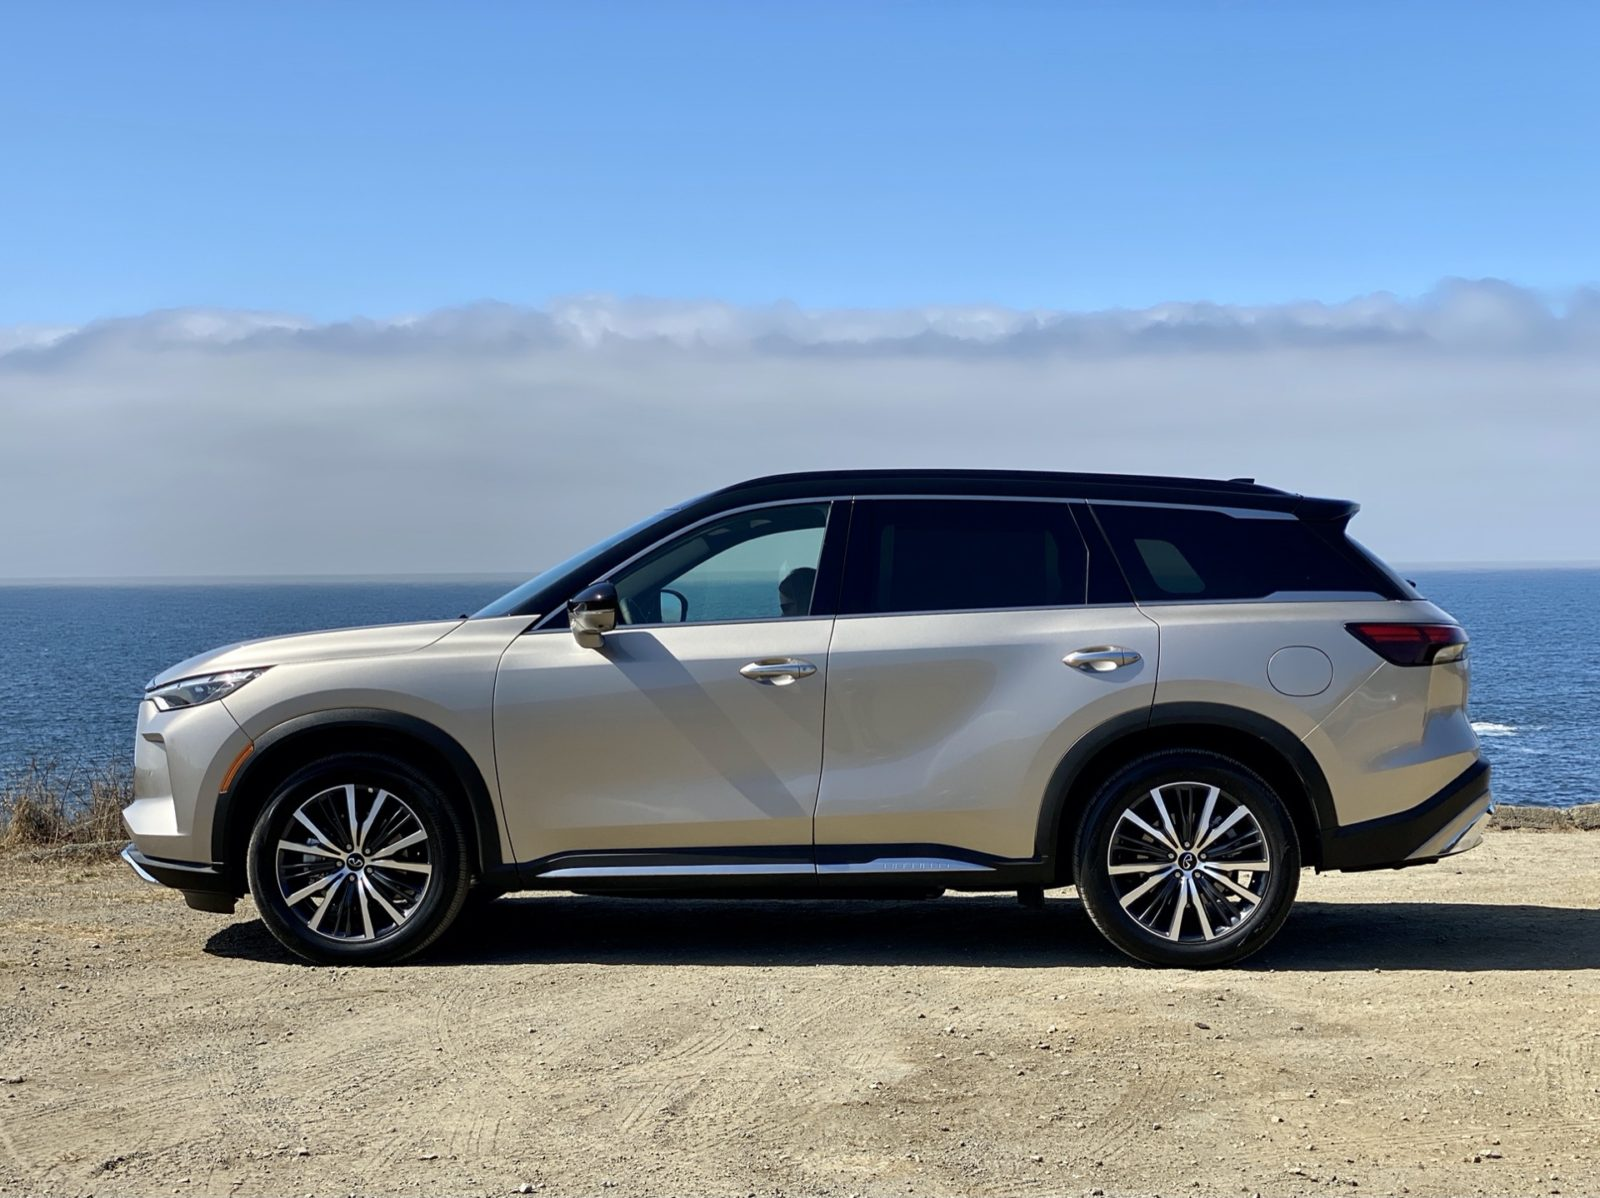 2022-infiniti-qx60-driven,-2021-lotus-evora-tested,-toyota-to-cut-ev-costs:-what's-new-@-the-car-connection